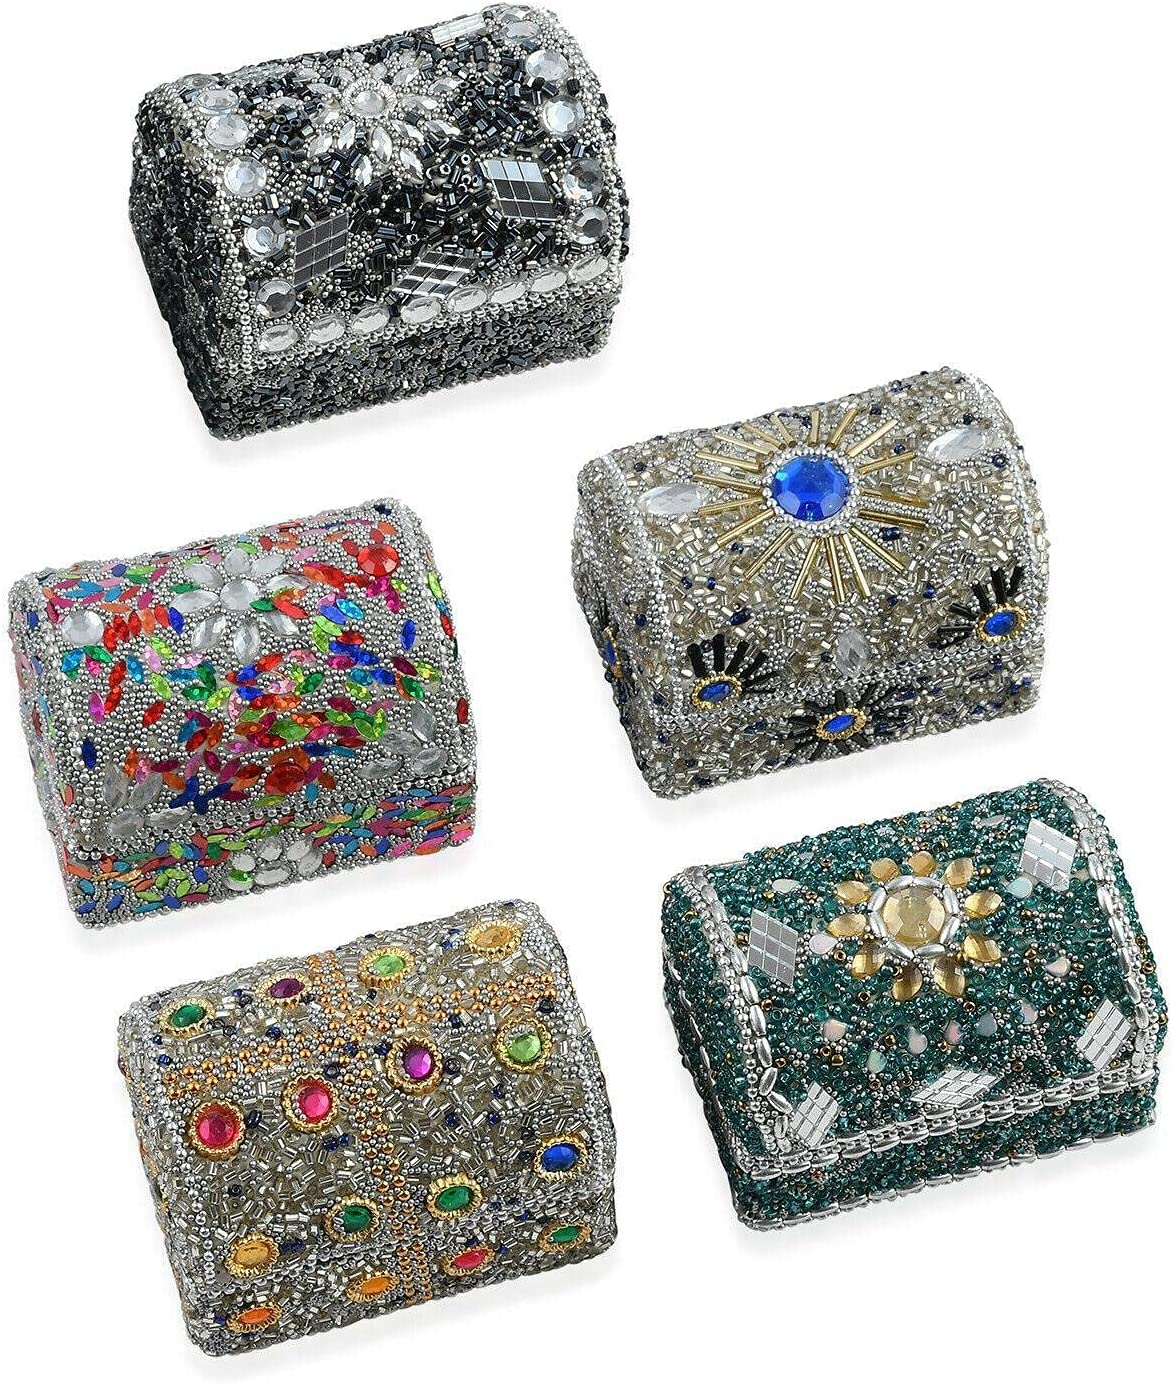 Multi Color Set of 5 Beaded Portable Jewelry Mini Save money Organize Chest Ranking TOP17